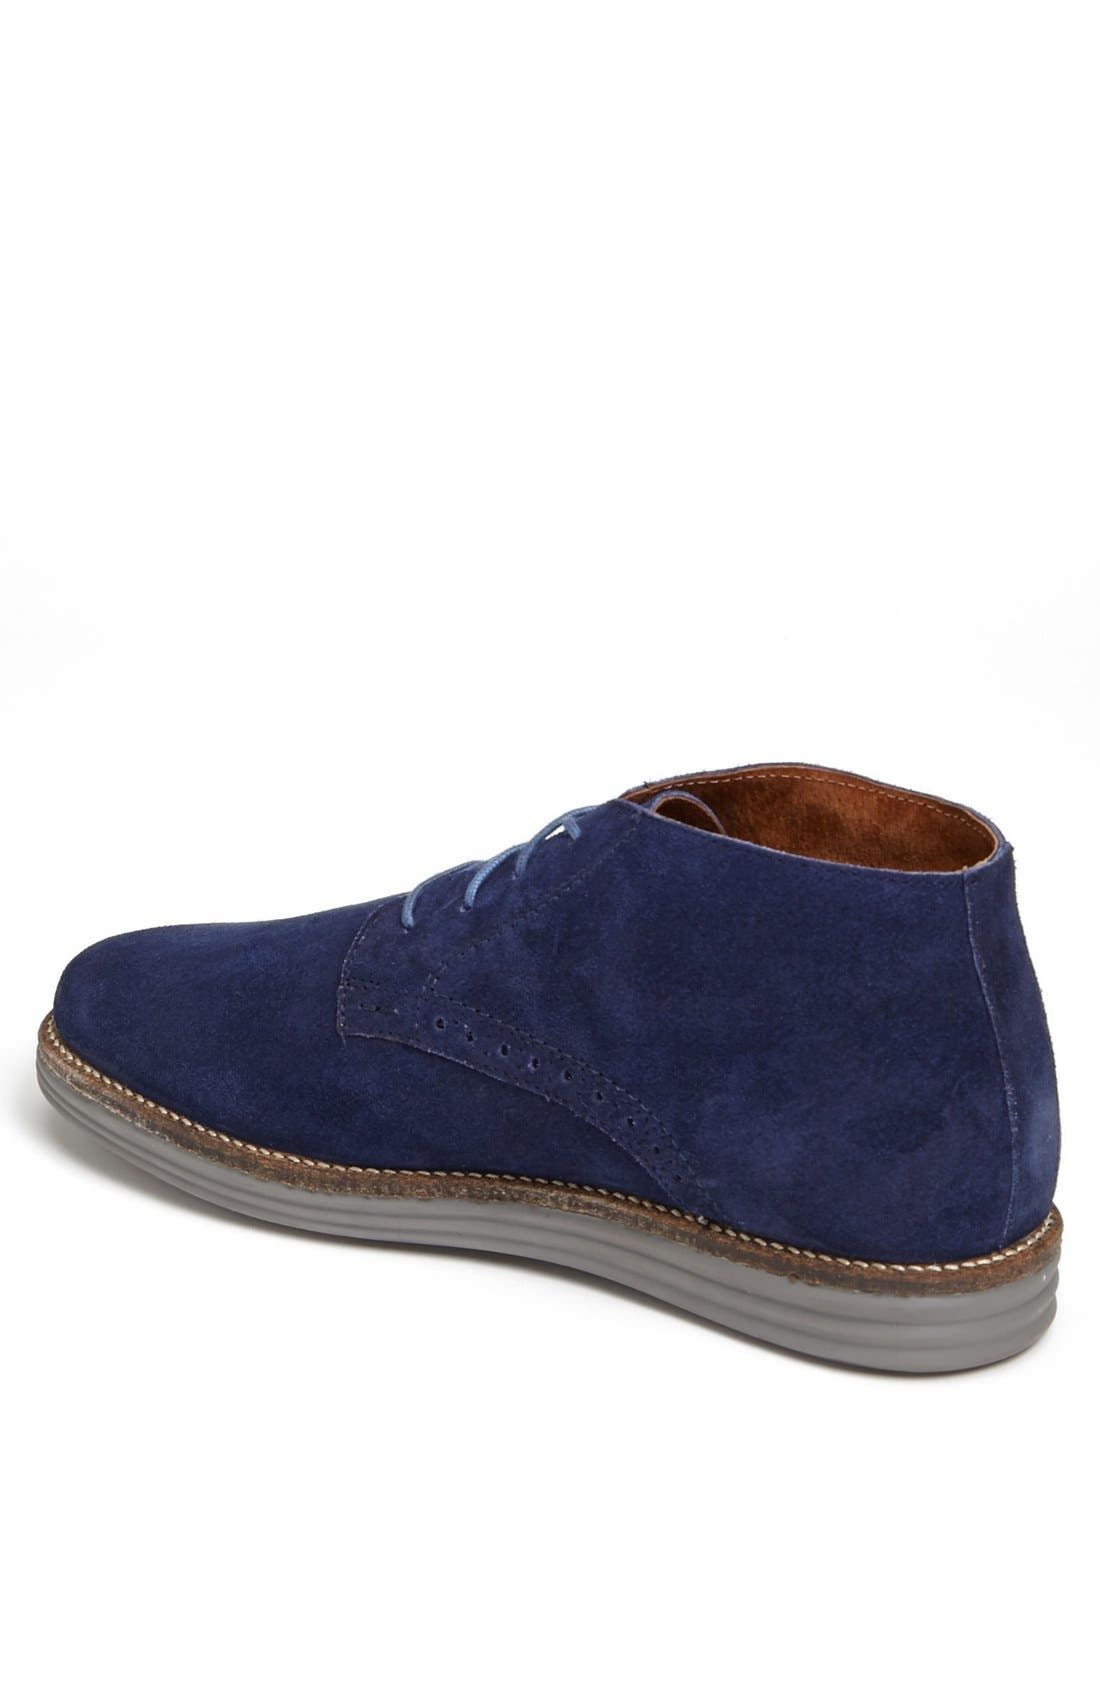 Alternate Image 2  - Ben Sherman 'Zen' Chukka Boot